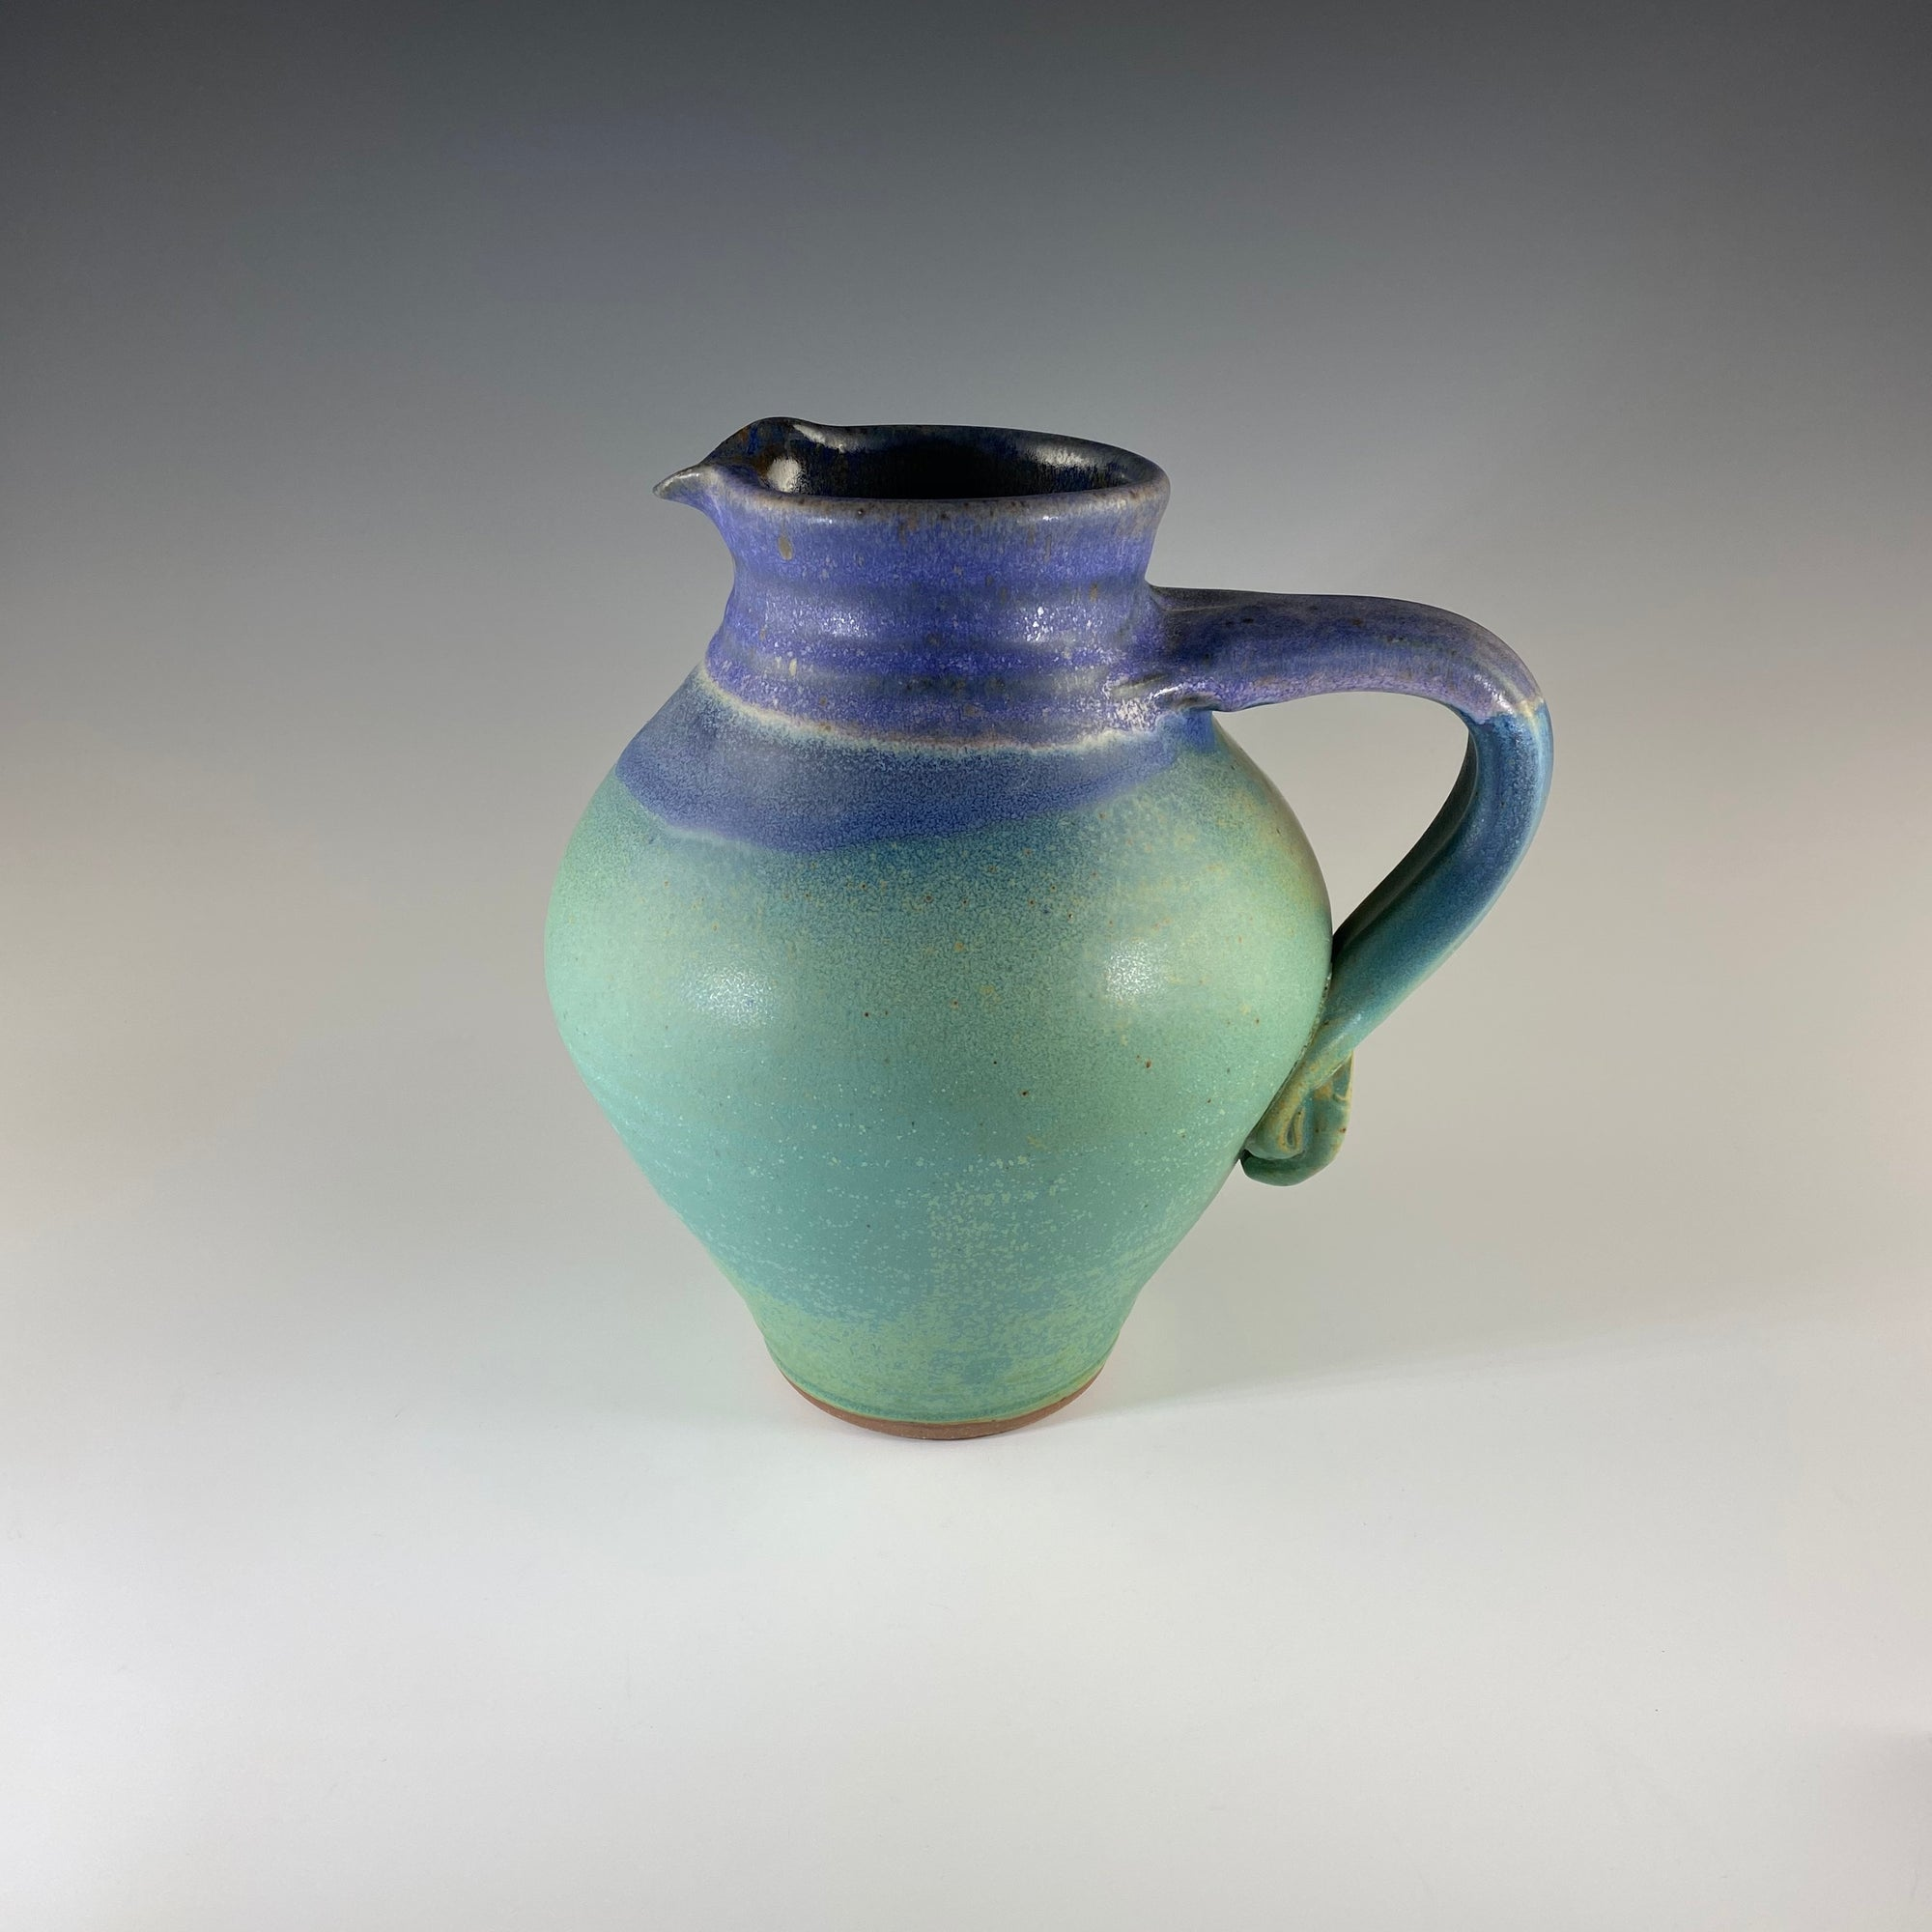 Small Round Pitcher in Turquoise & Lavender - Heart of the Home PA